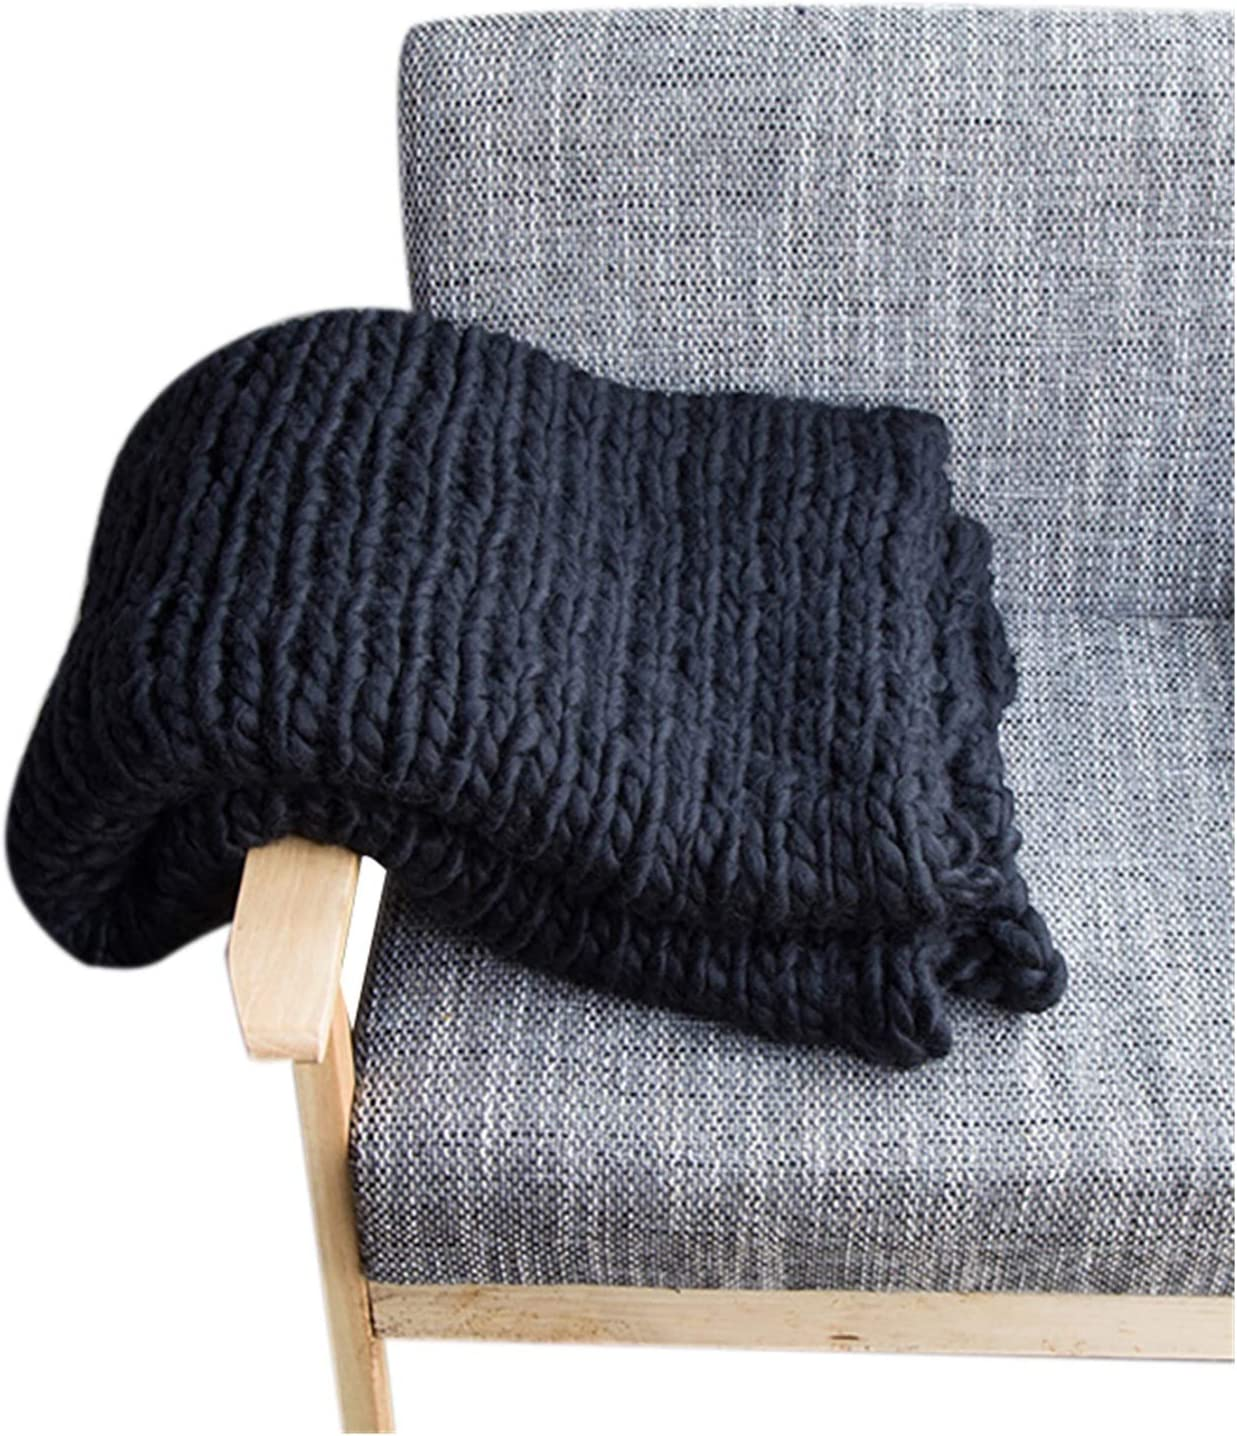 JDJD Hand Knitted Chunky Blanket Free Shipping Cheap Bargain Gift Bulky High quality Yarn Wool Thick Weighted